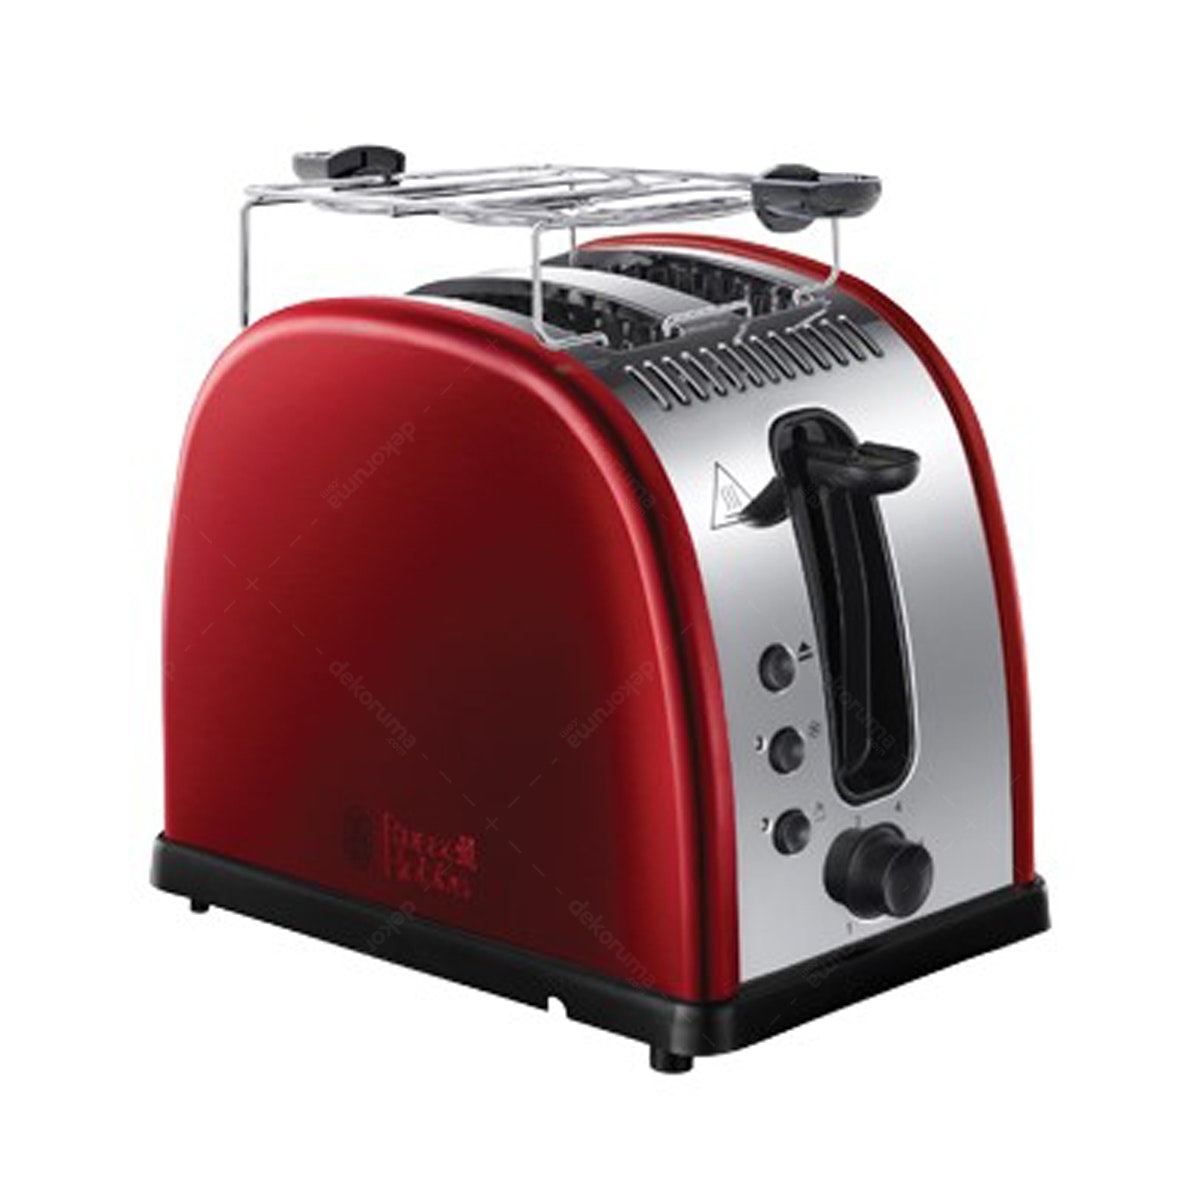 Russell Hobbs Legacy 2SL Toaster Red